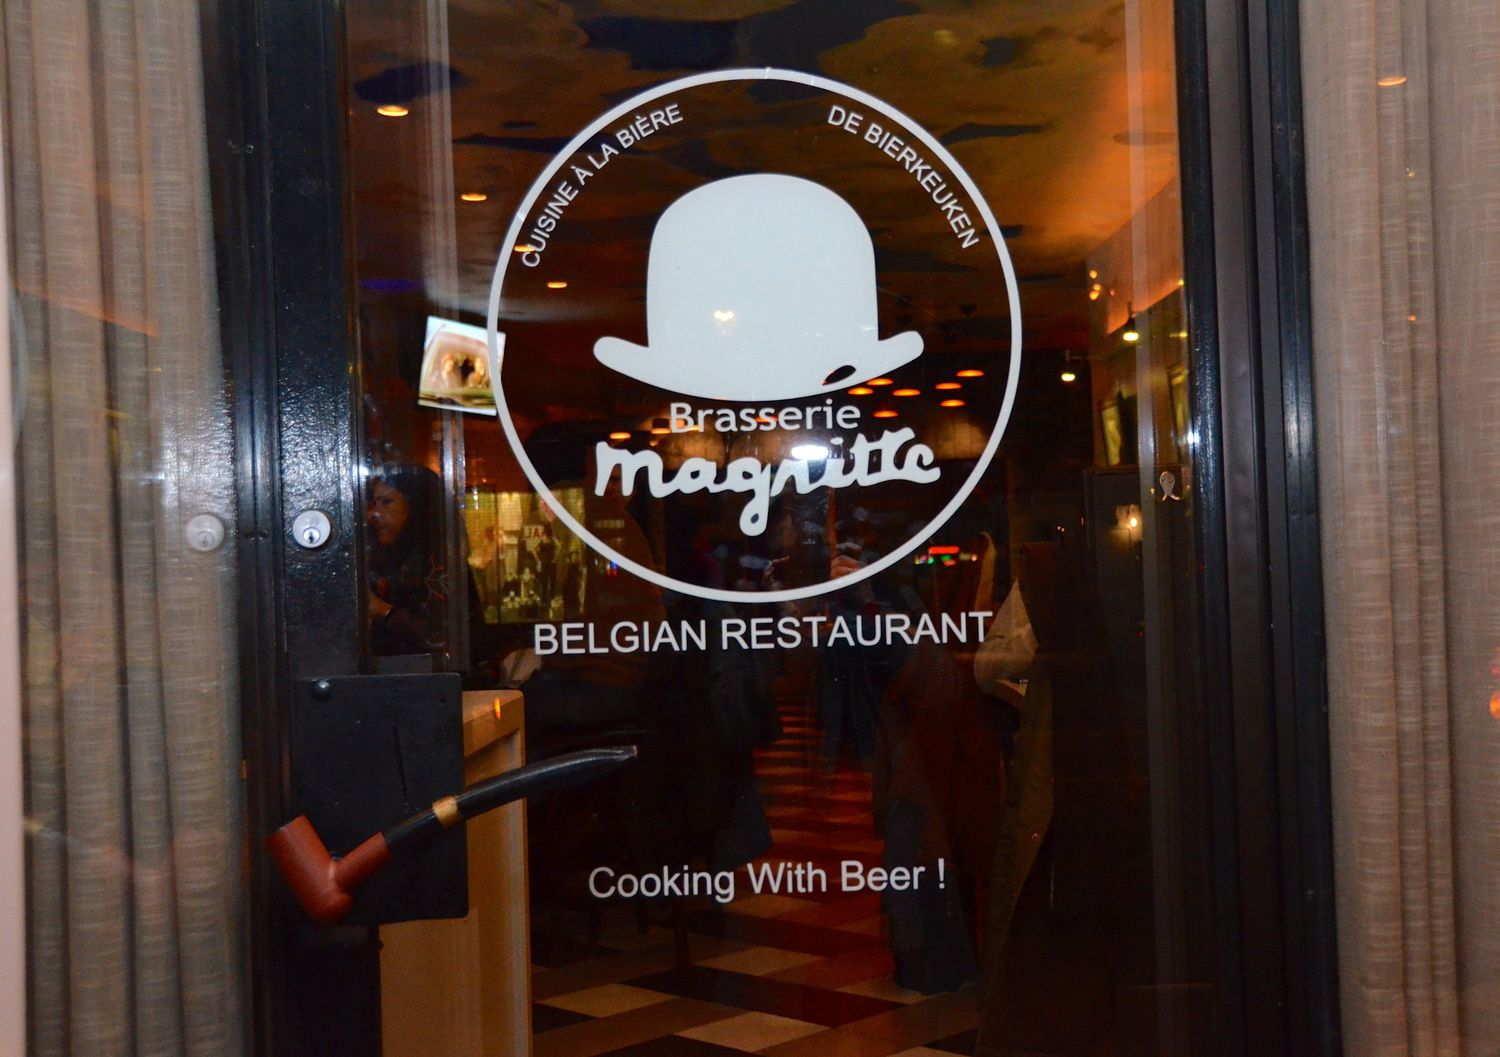 Welcome to Brasserie Magritte